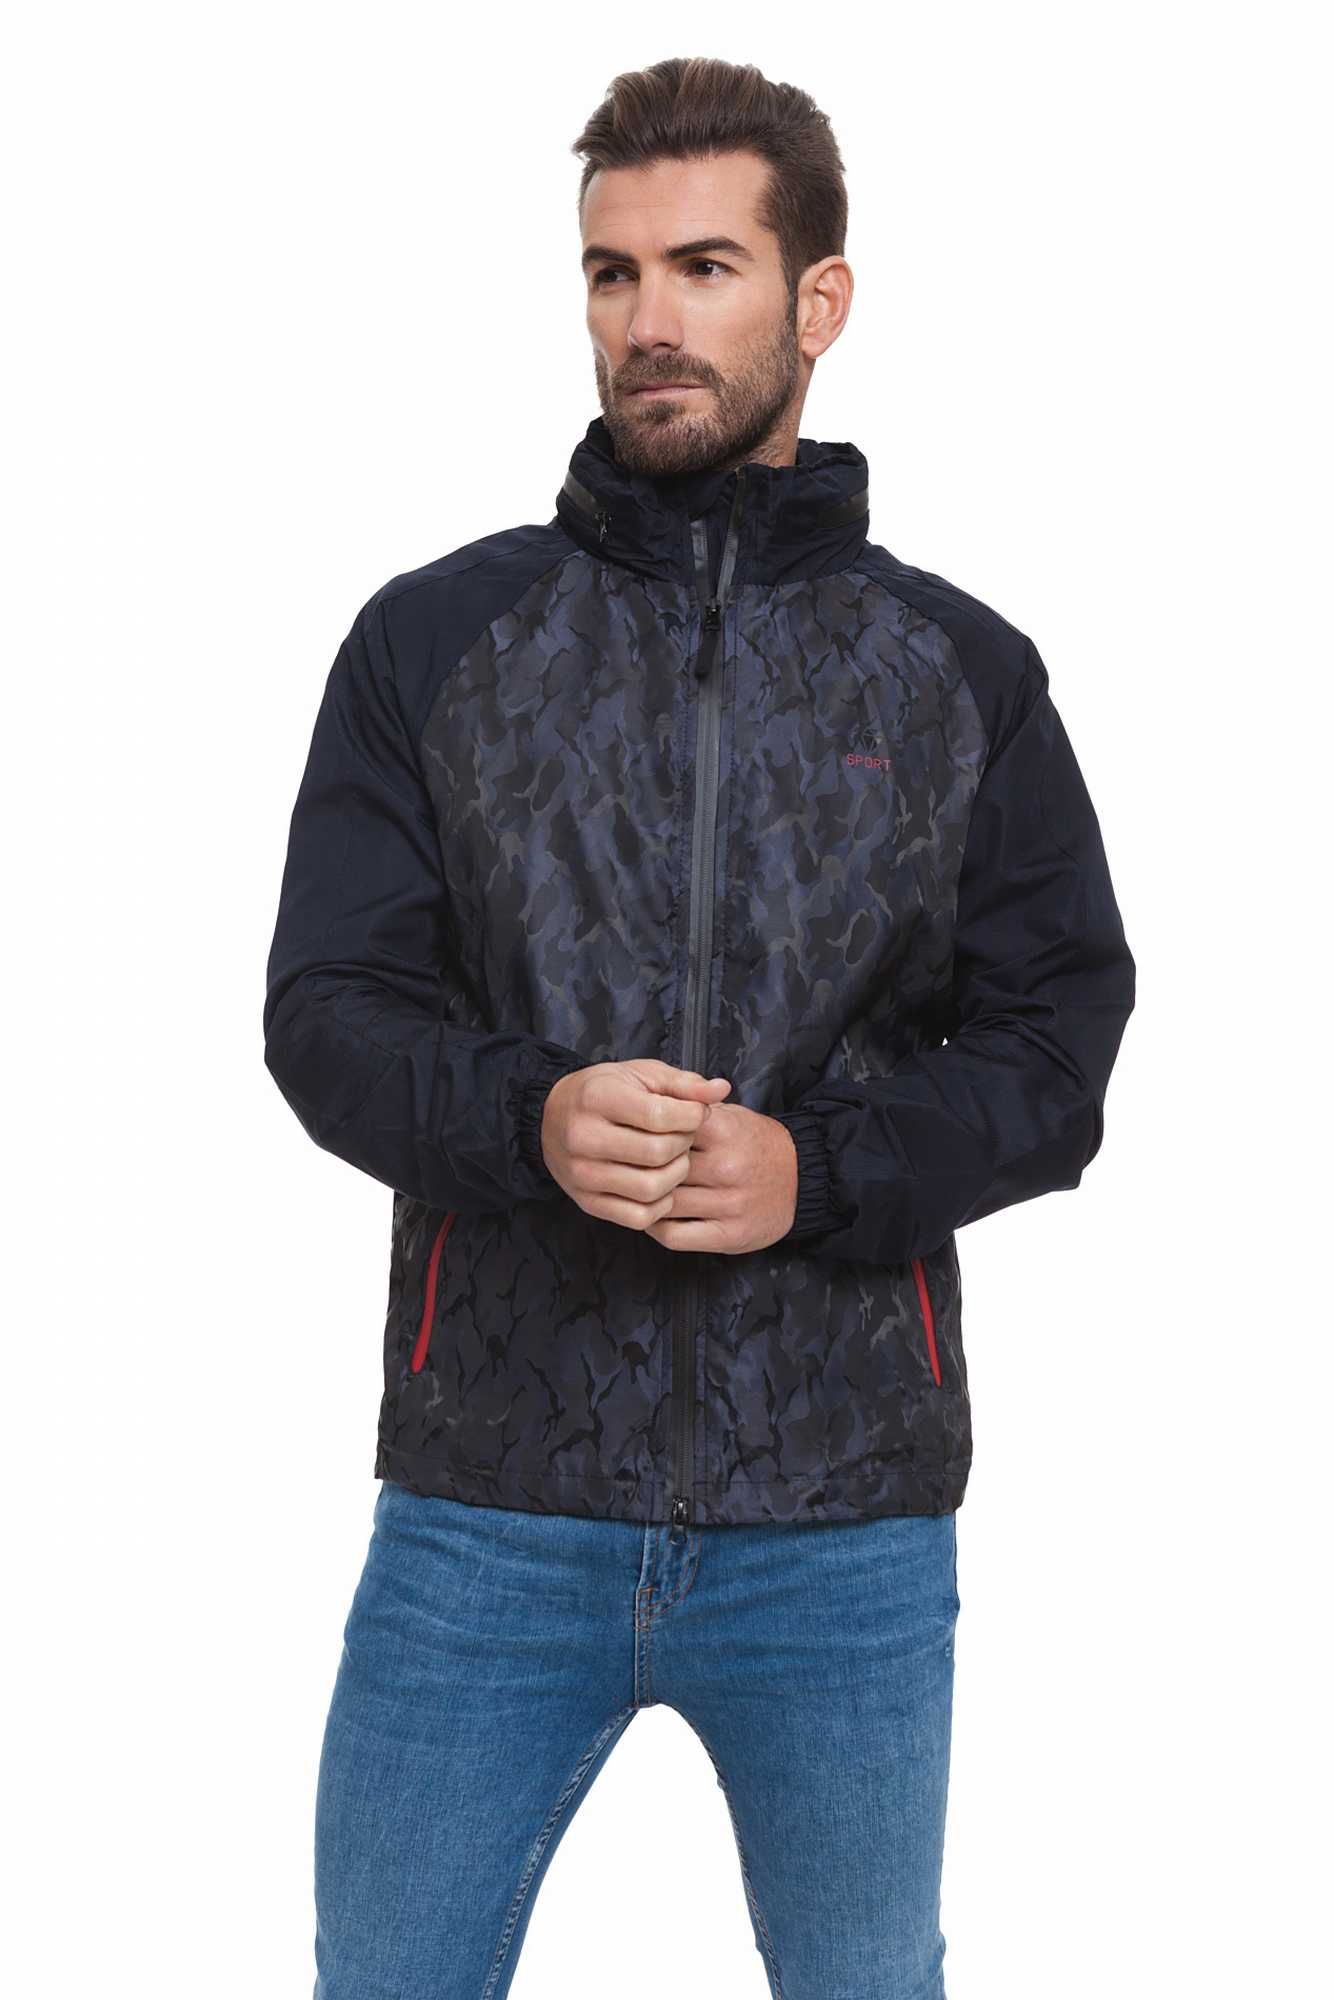 Born Rich Jacket For Men FABREGAS With Hoodie And Zipper Length Dark Blue Causal BR2K111097AA2BRC-2